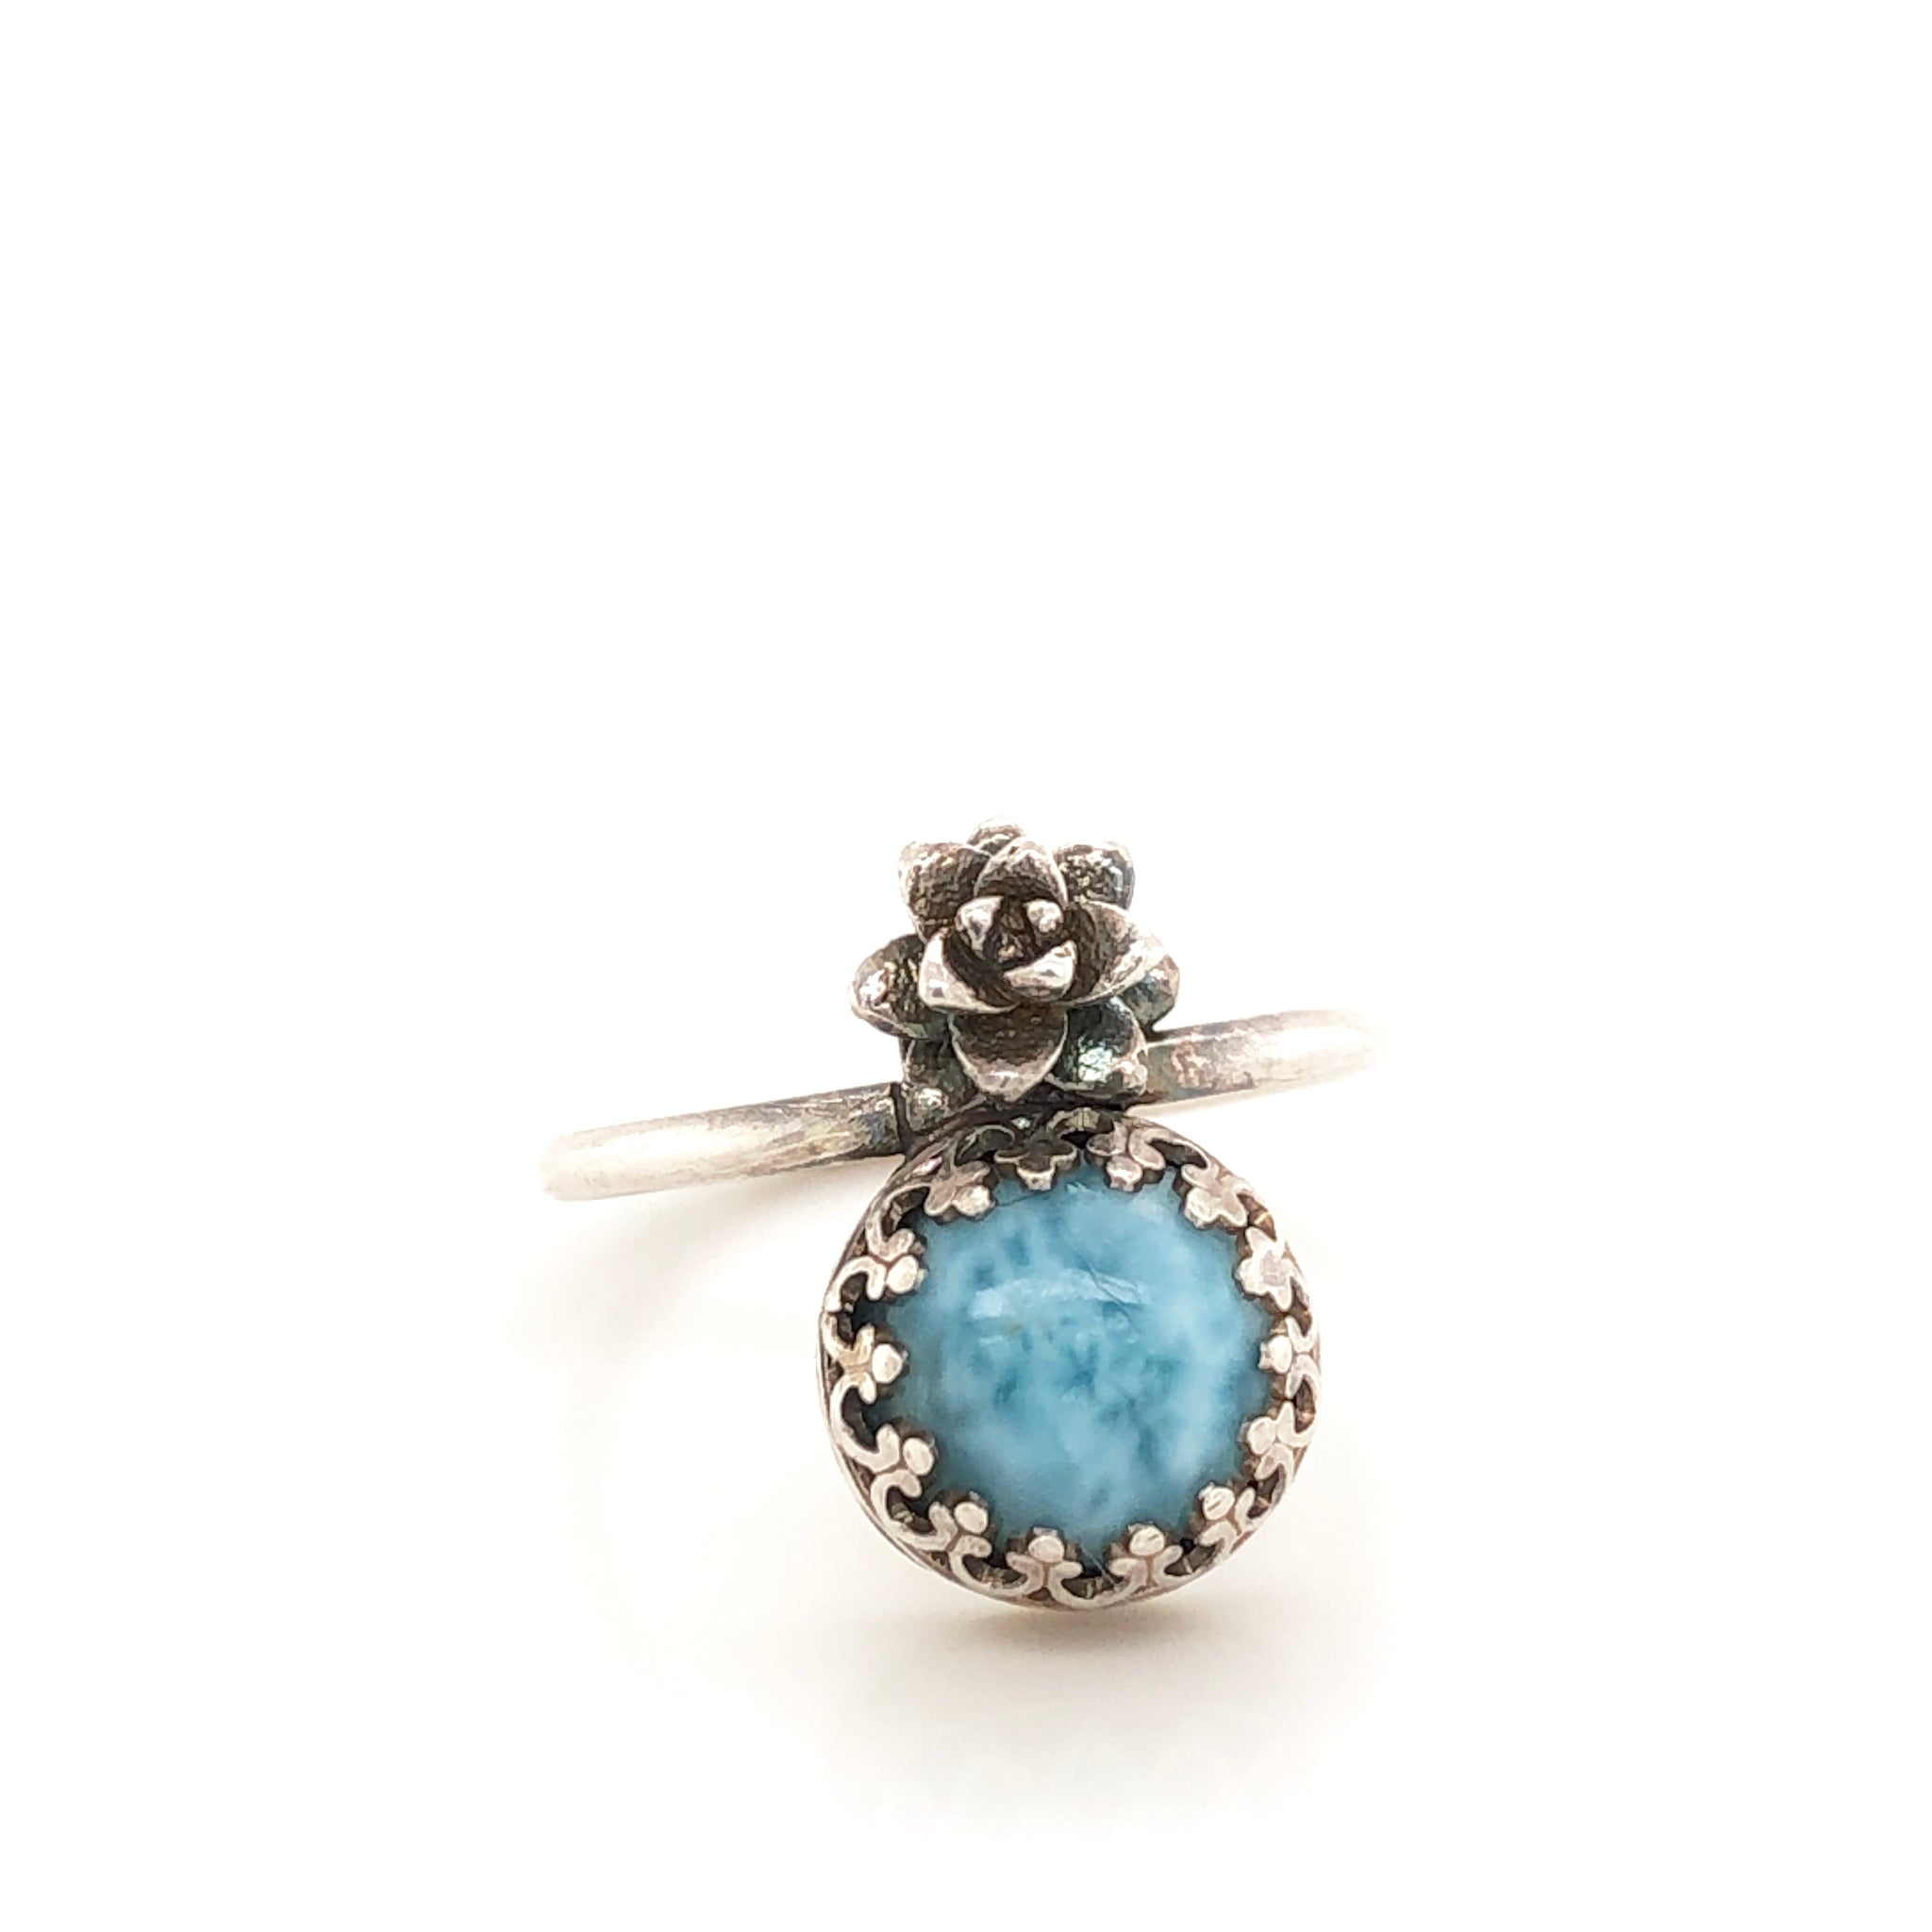 Crowned Larimar and Silver Succulent Ring,Size 6.25